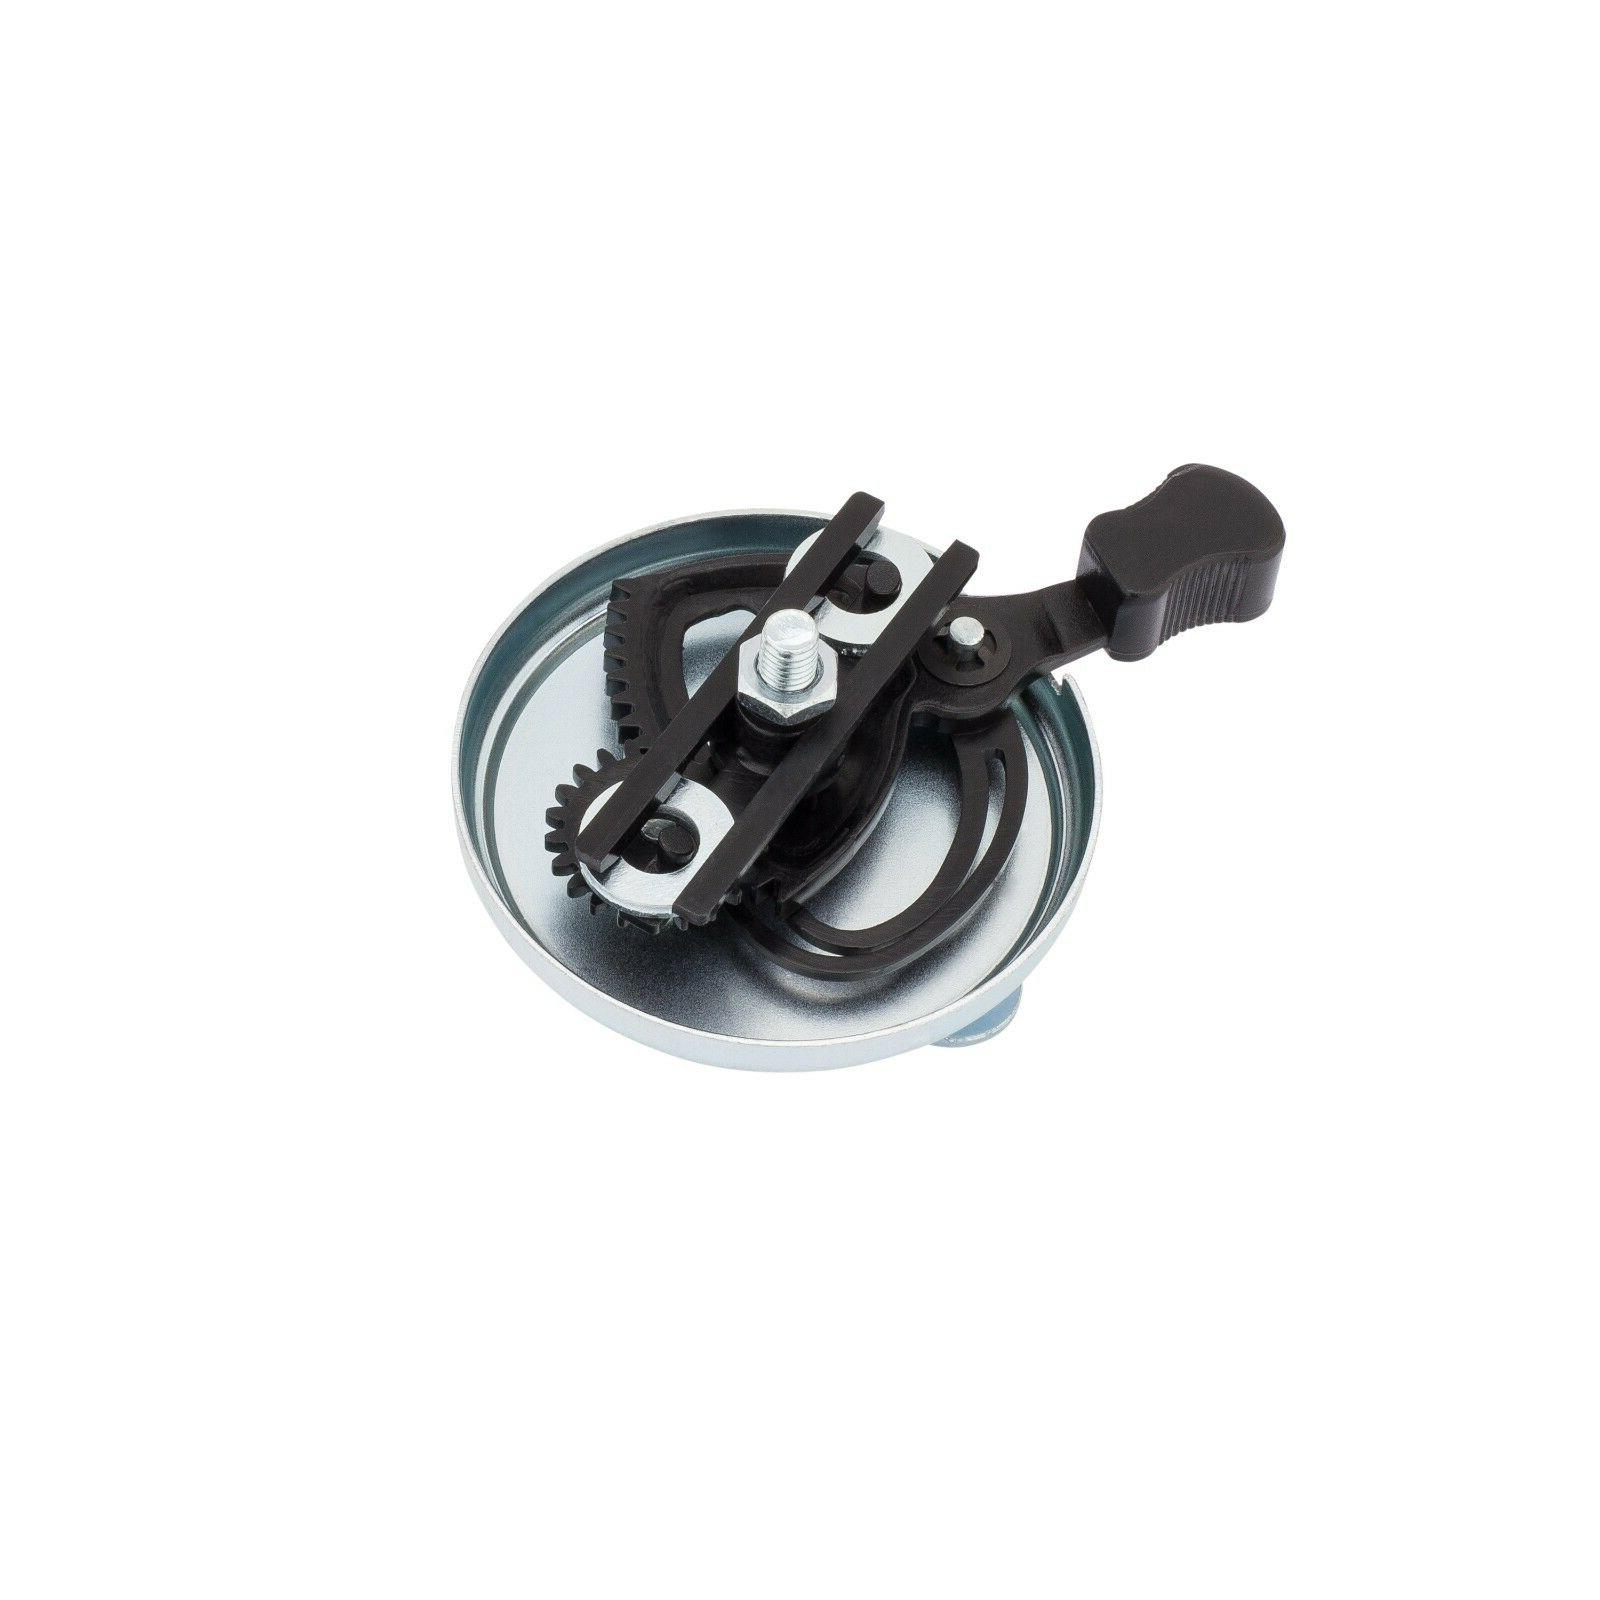 Kickstand Works Bicycle Bell